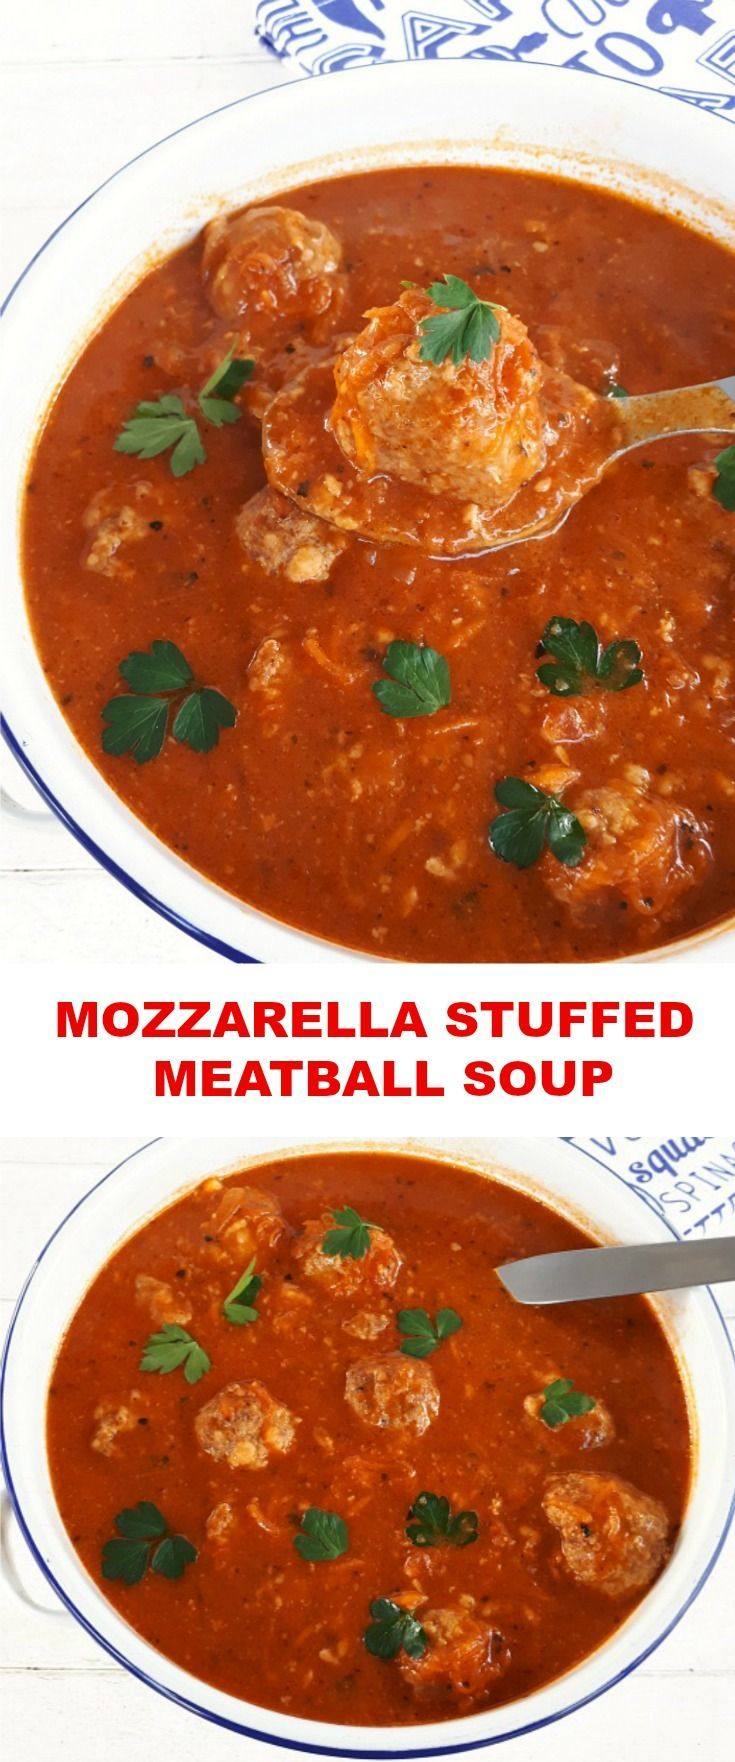 Rich Tomato based Soup with Mozzarella stuffed Meatballs make a hearty, warming dinner #Meatballs #Soup #SoupRecipes